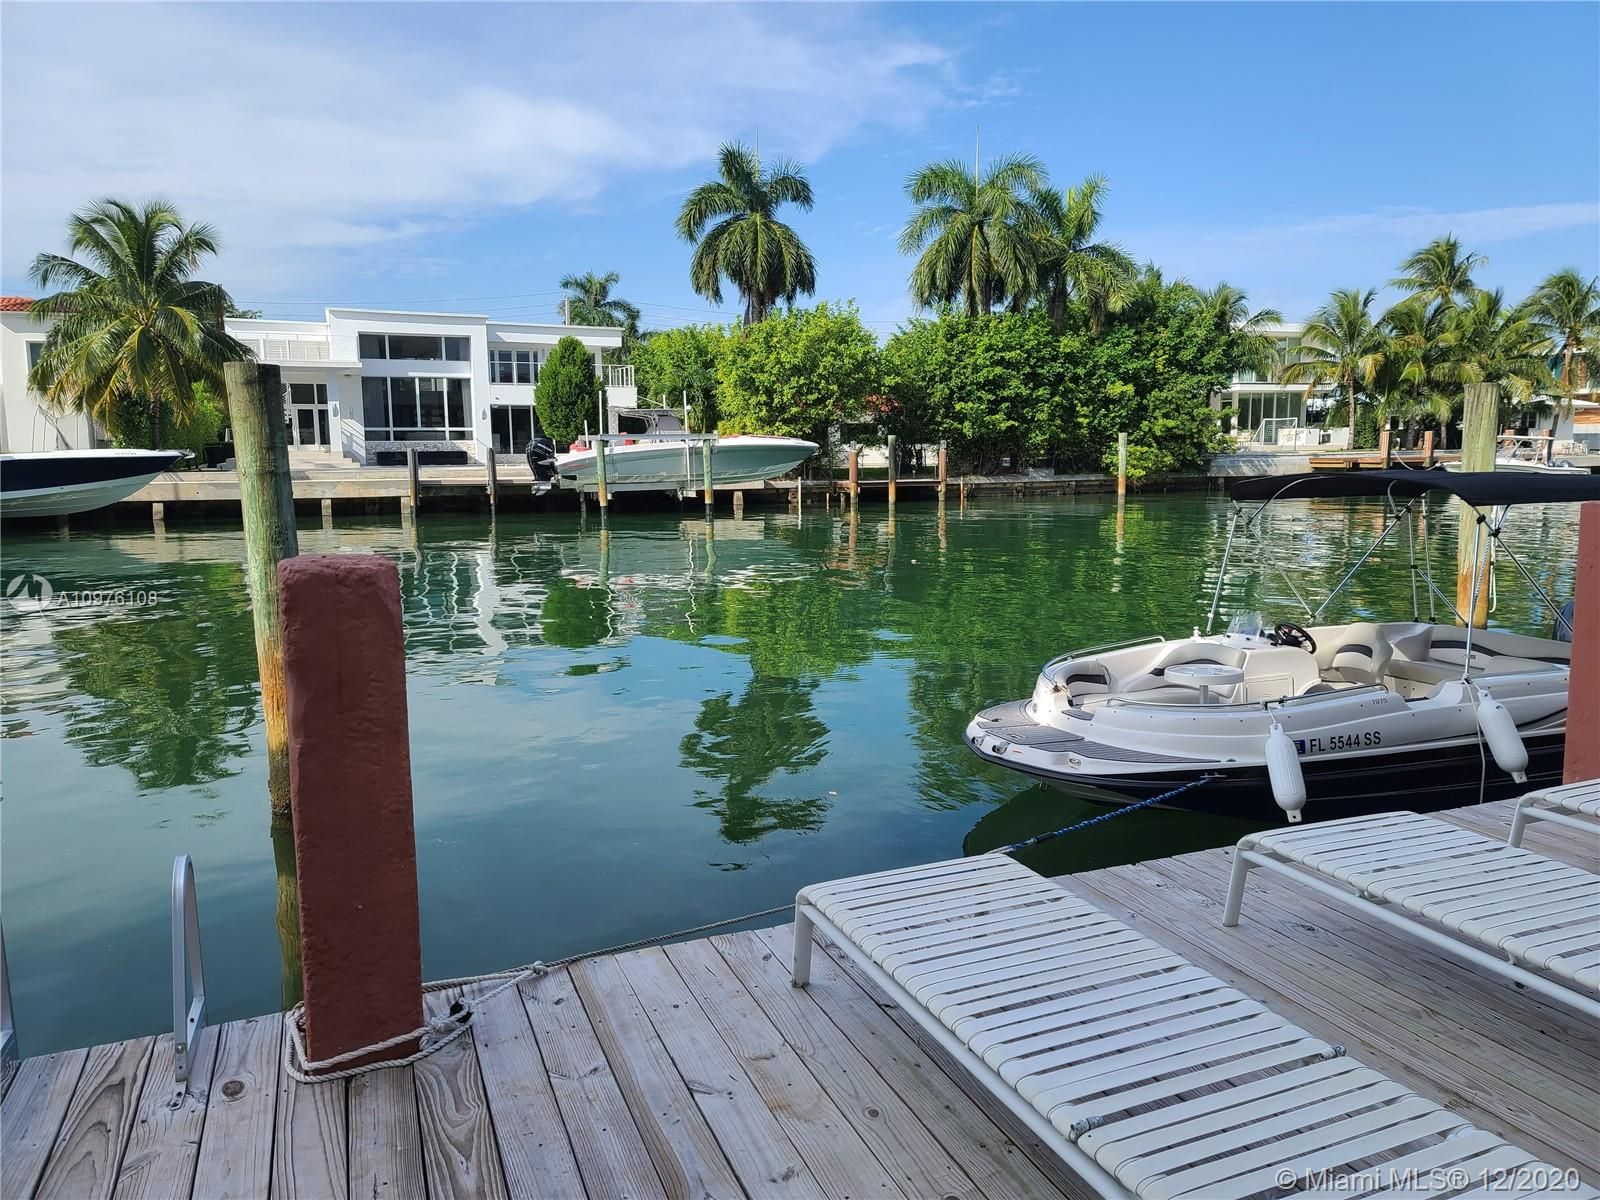 Great opportunity to build your dream home on the water in  from Indian Creek Island & Bay Harbor Islands. Very spacious 1 bedroom with 1.5 bathrooms condo unit. Located on the bay in charming Bay Harbor Islands. Boutique, secured building with pool, club room and dock with available boat slips. Open balcony with canal view  including large storage unit on ground floor. Walk to restaurants, shops, parks and beach. BREATHTAKING VIEW OF THE WATER. ONLY 12 UNITS IN THIS  ALL ARE FULL OF NATURAL LIGHT! ENJOY BEAUTIFUL SUNSET VIEWS. DON'T MISS THIS CHARMING UNIT! GREAT LOCATION! Ready for renovation NEEDS TLC. HURRY UP UNIT WILL NOT LAST. IT IS EASY TO SHOW.